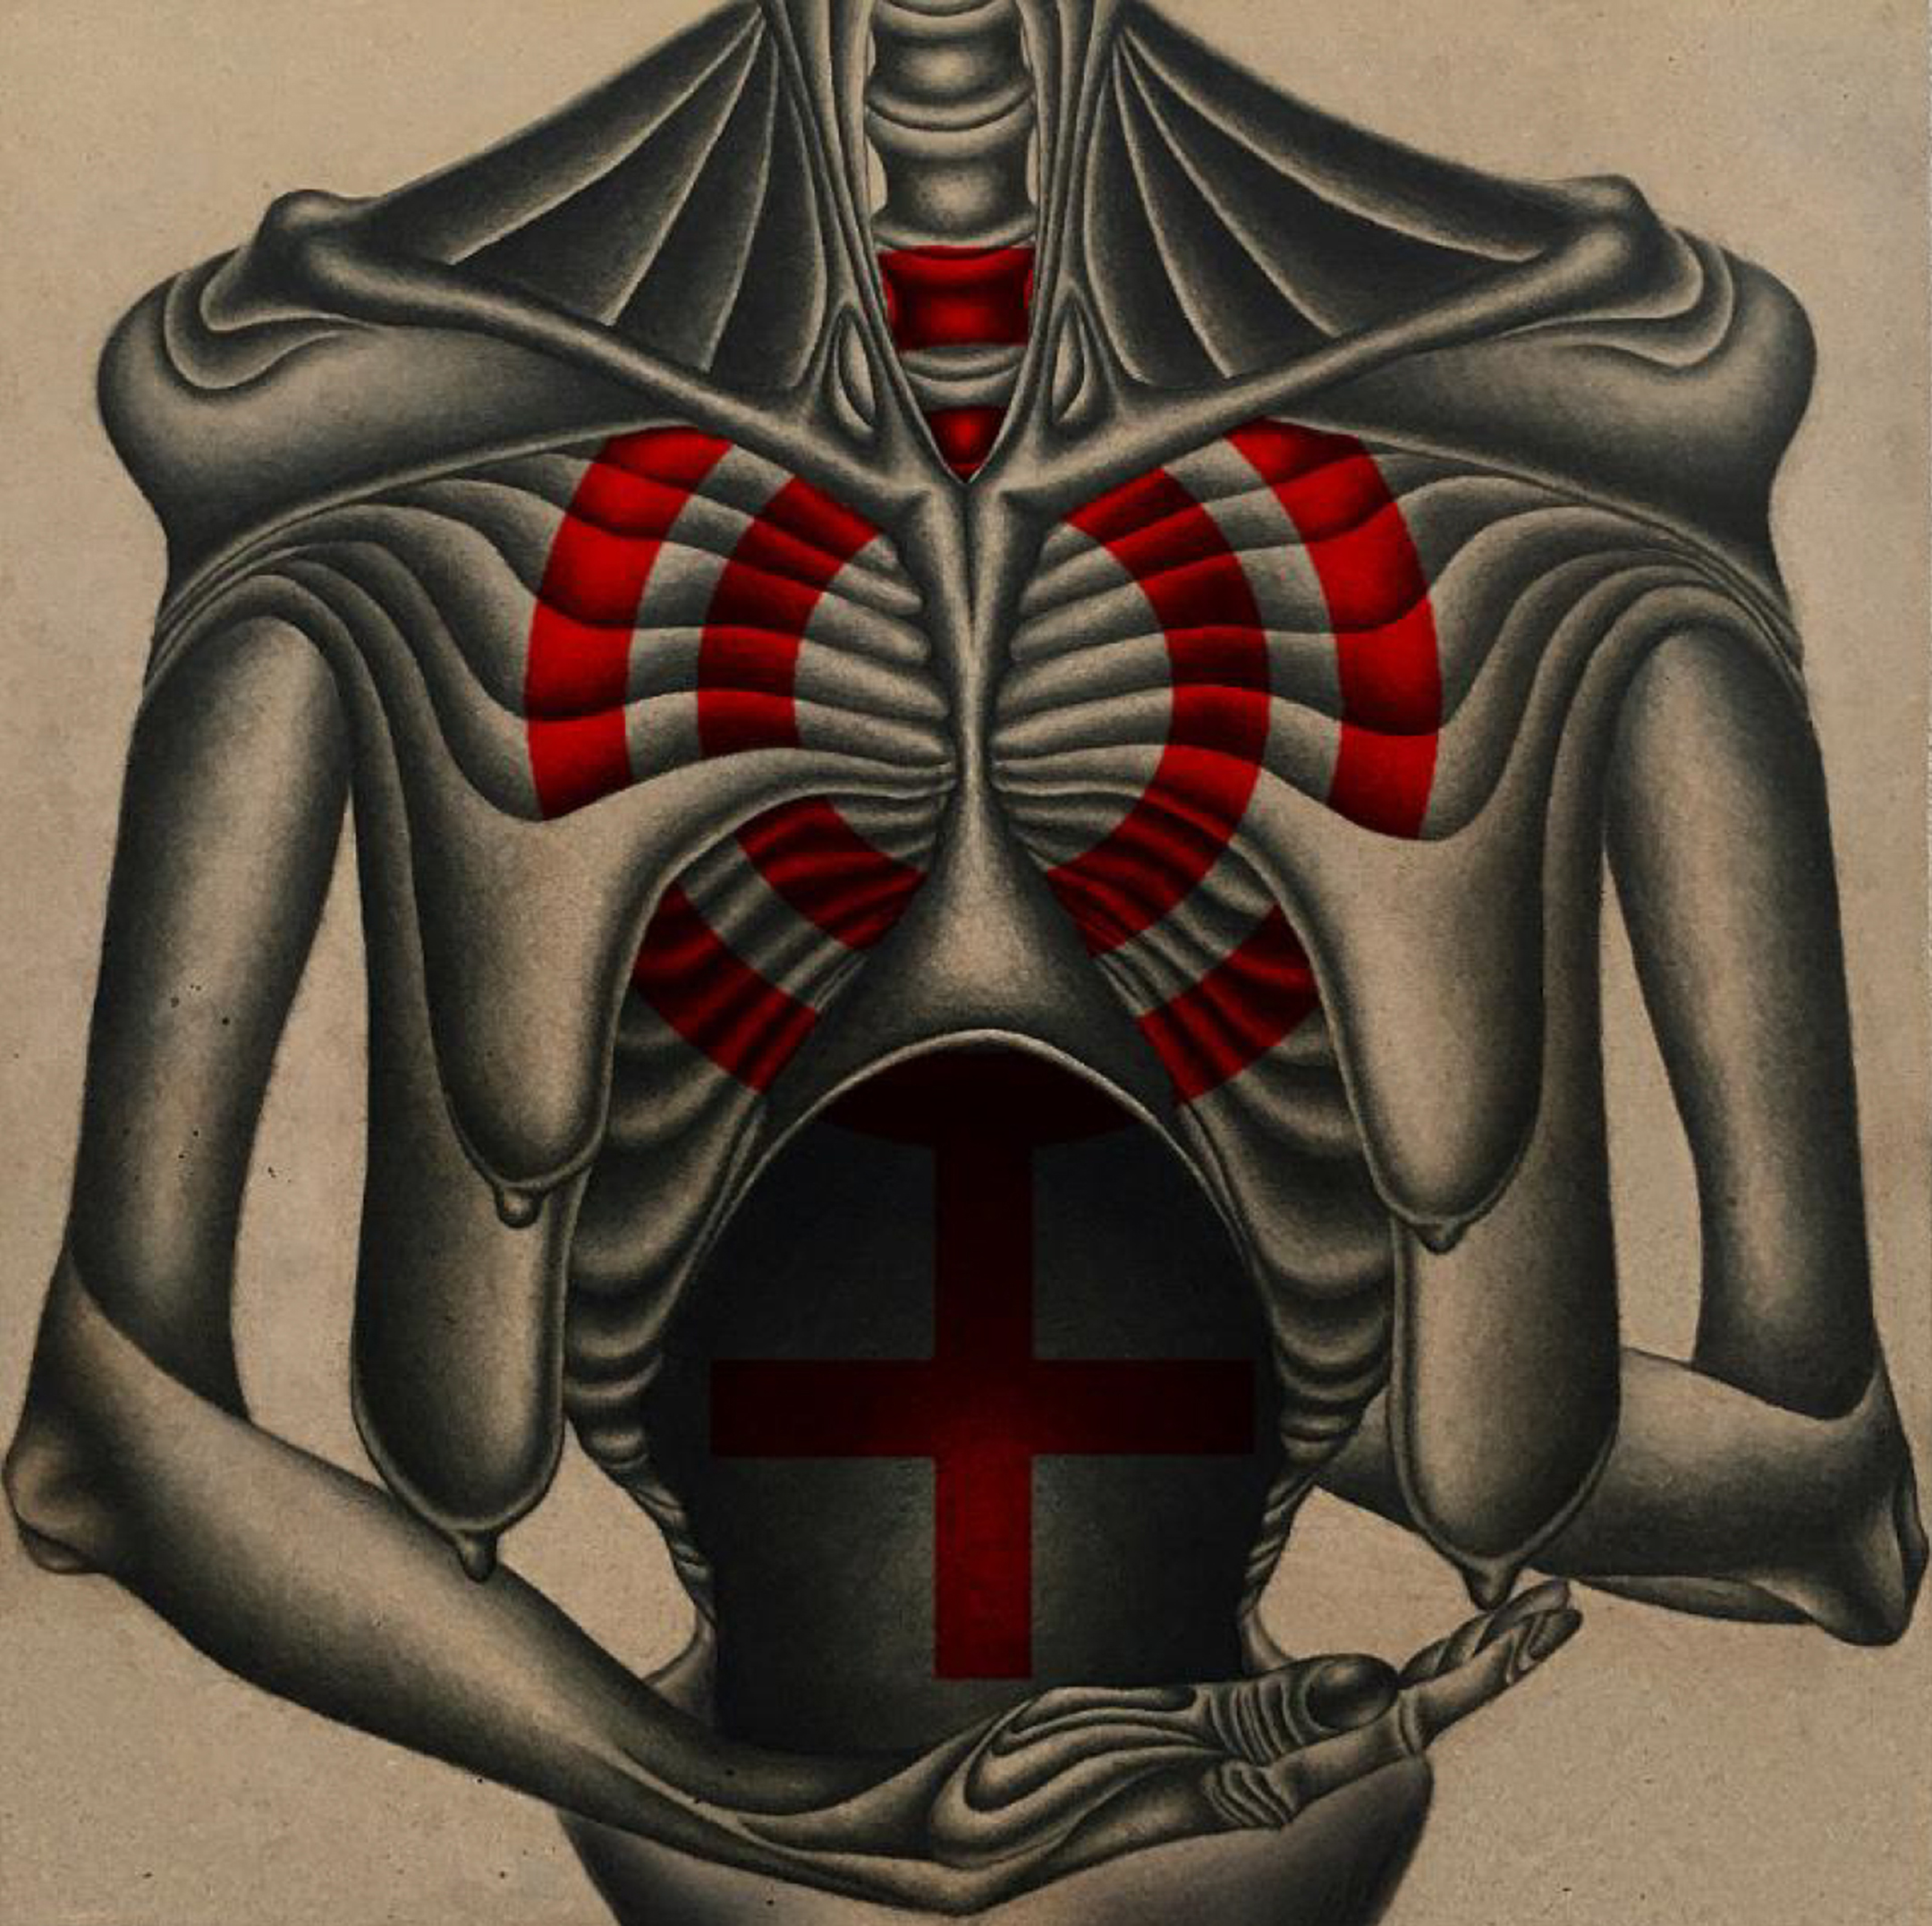 Painting of an emaciated human torso, with two red circles printed over it